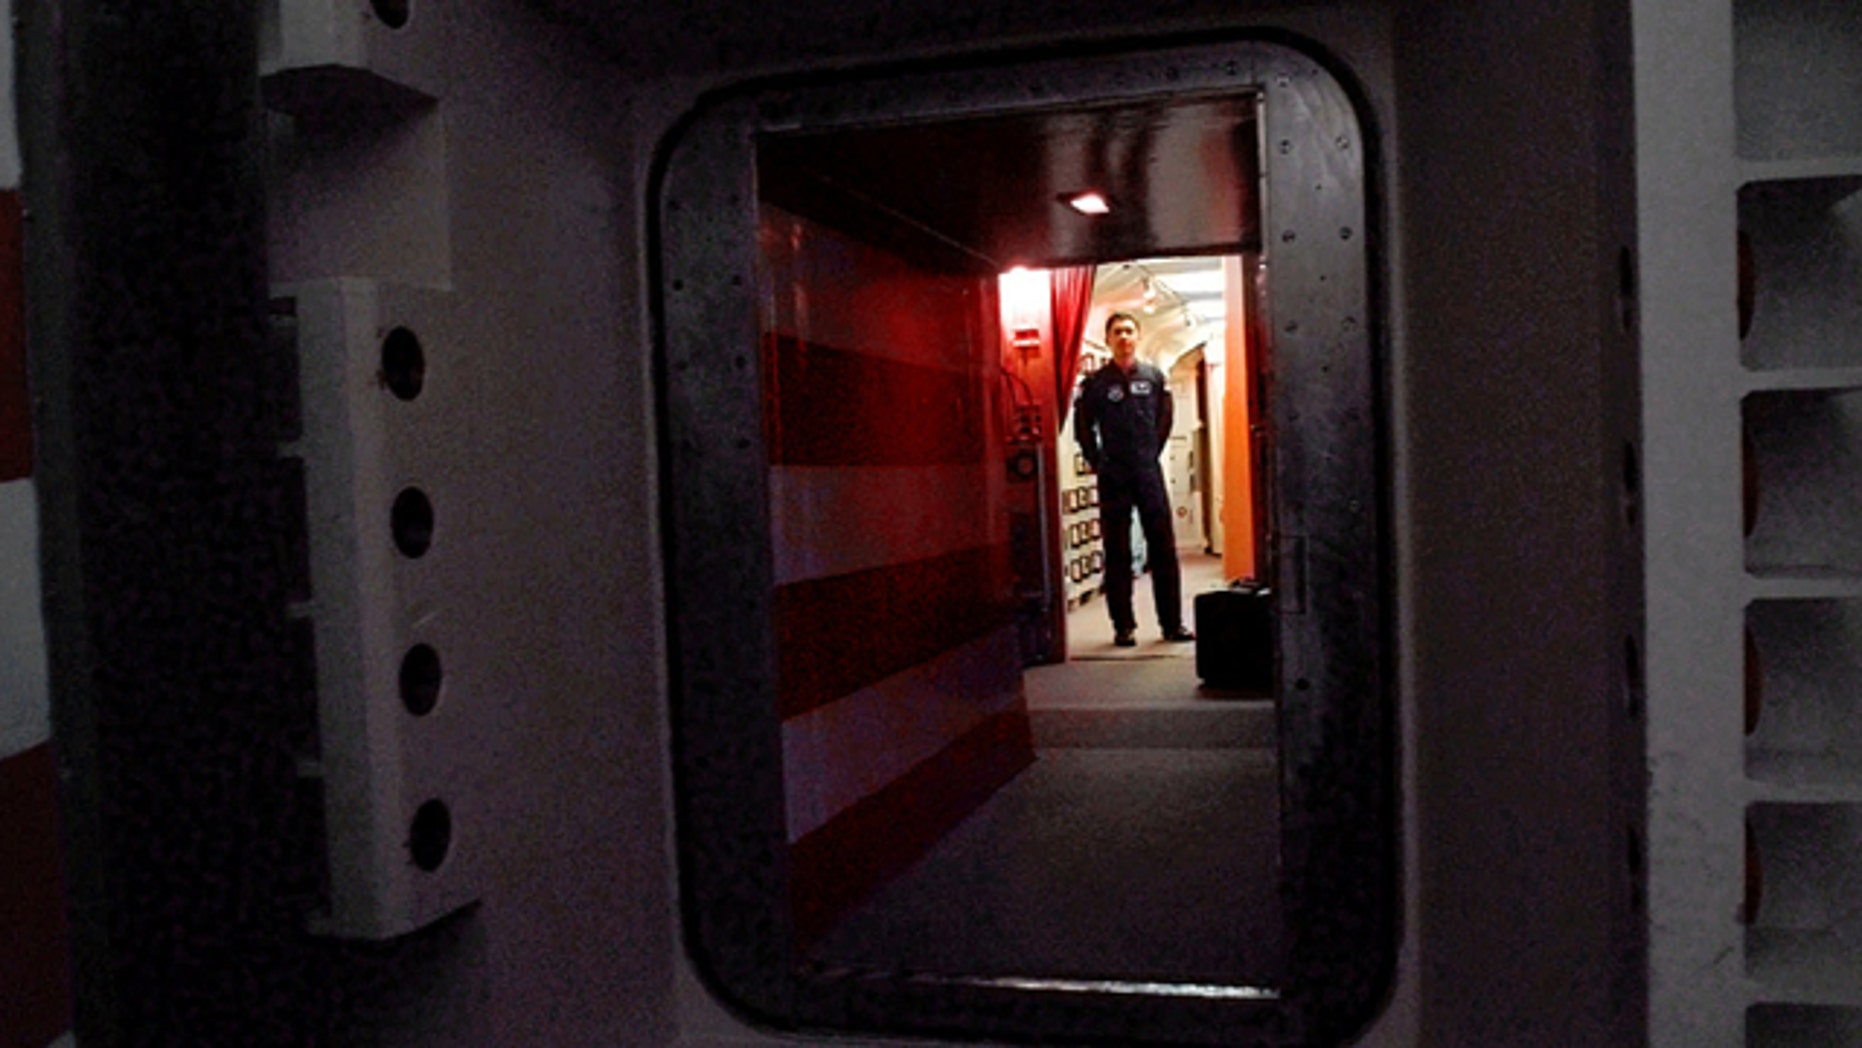 FILE: An Air Force missile crew commander standing at the door of his launch capsule 100-feet under ground where he and his partner are responsible for 10 nuclear-armed ICBM's, in north-central Colorado.